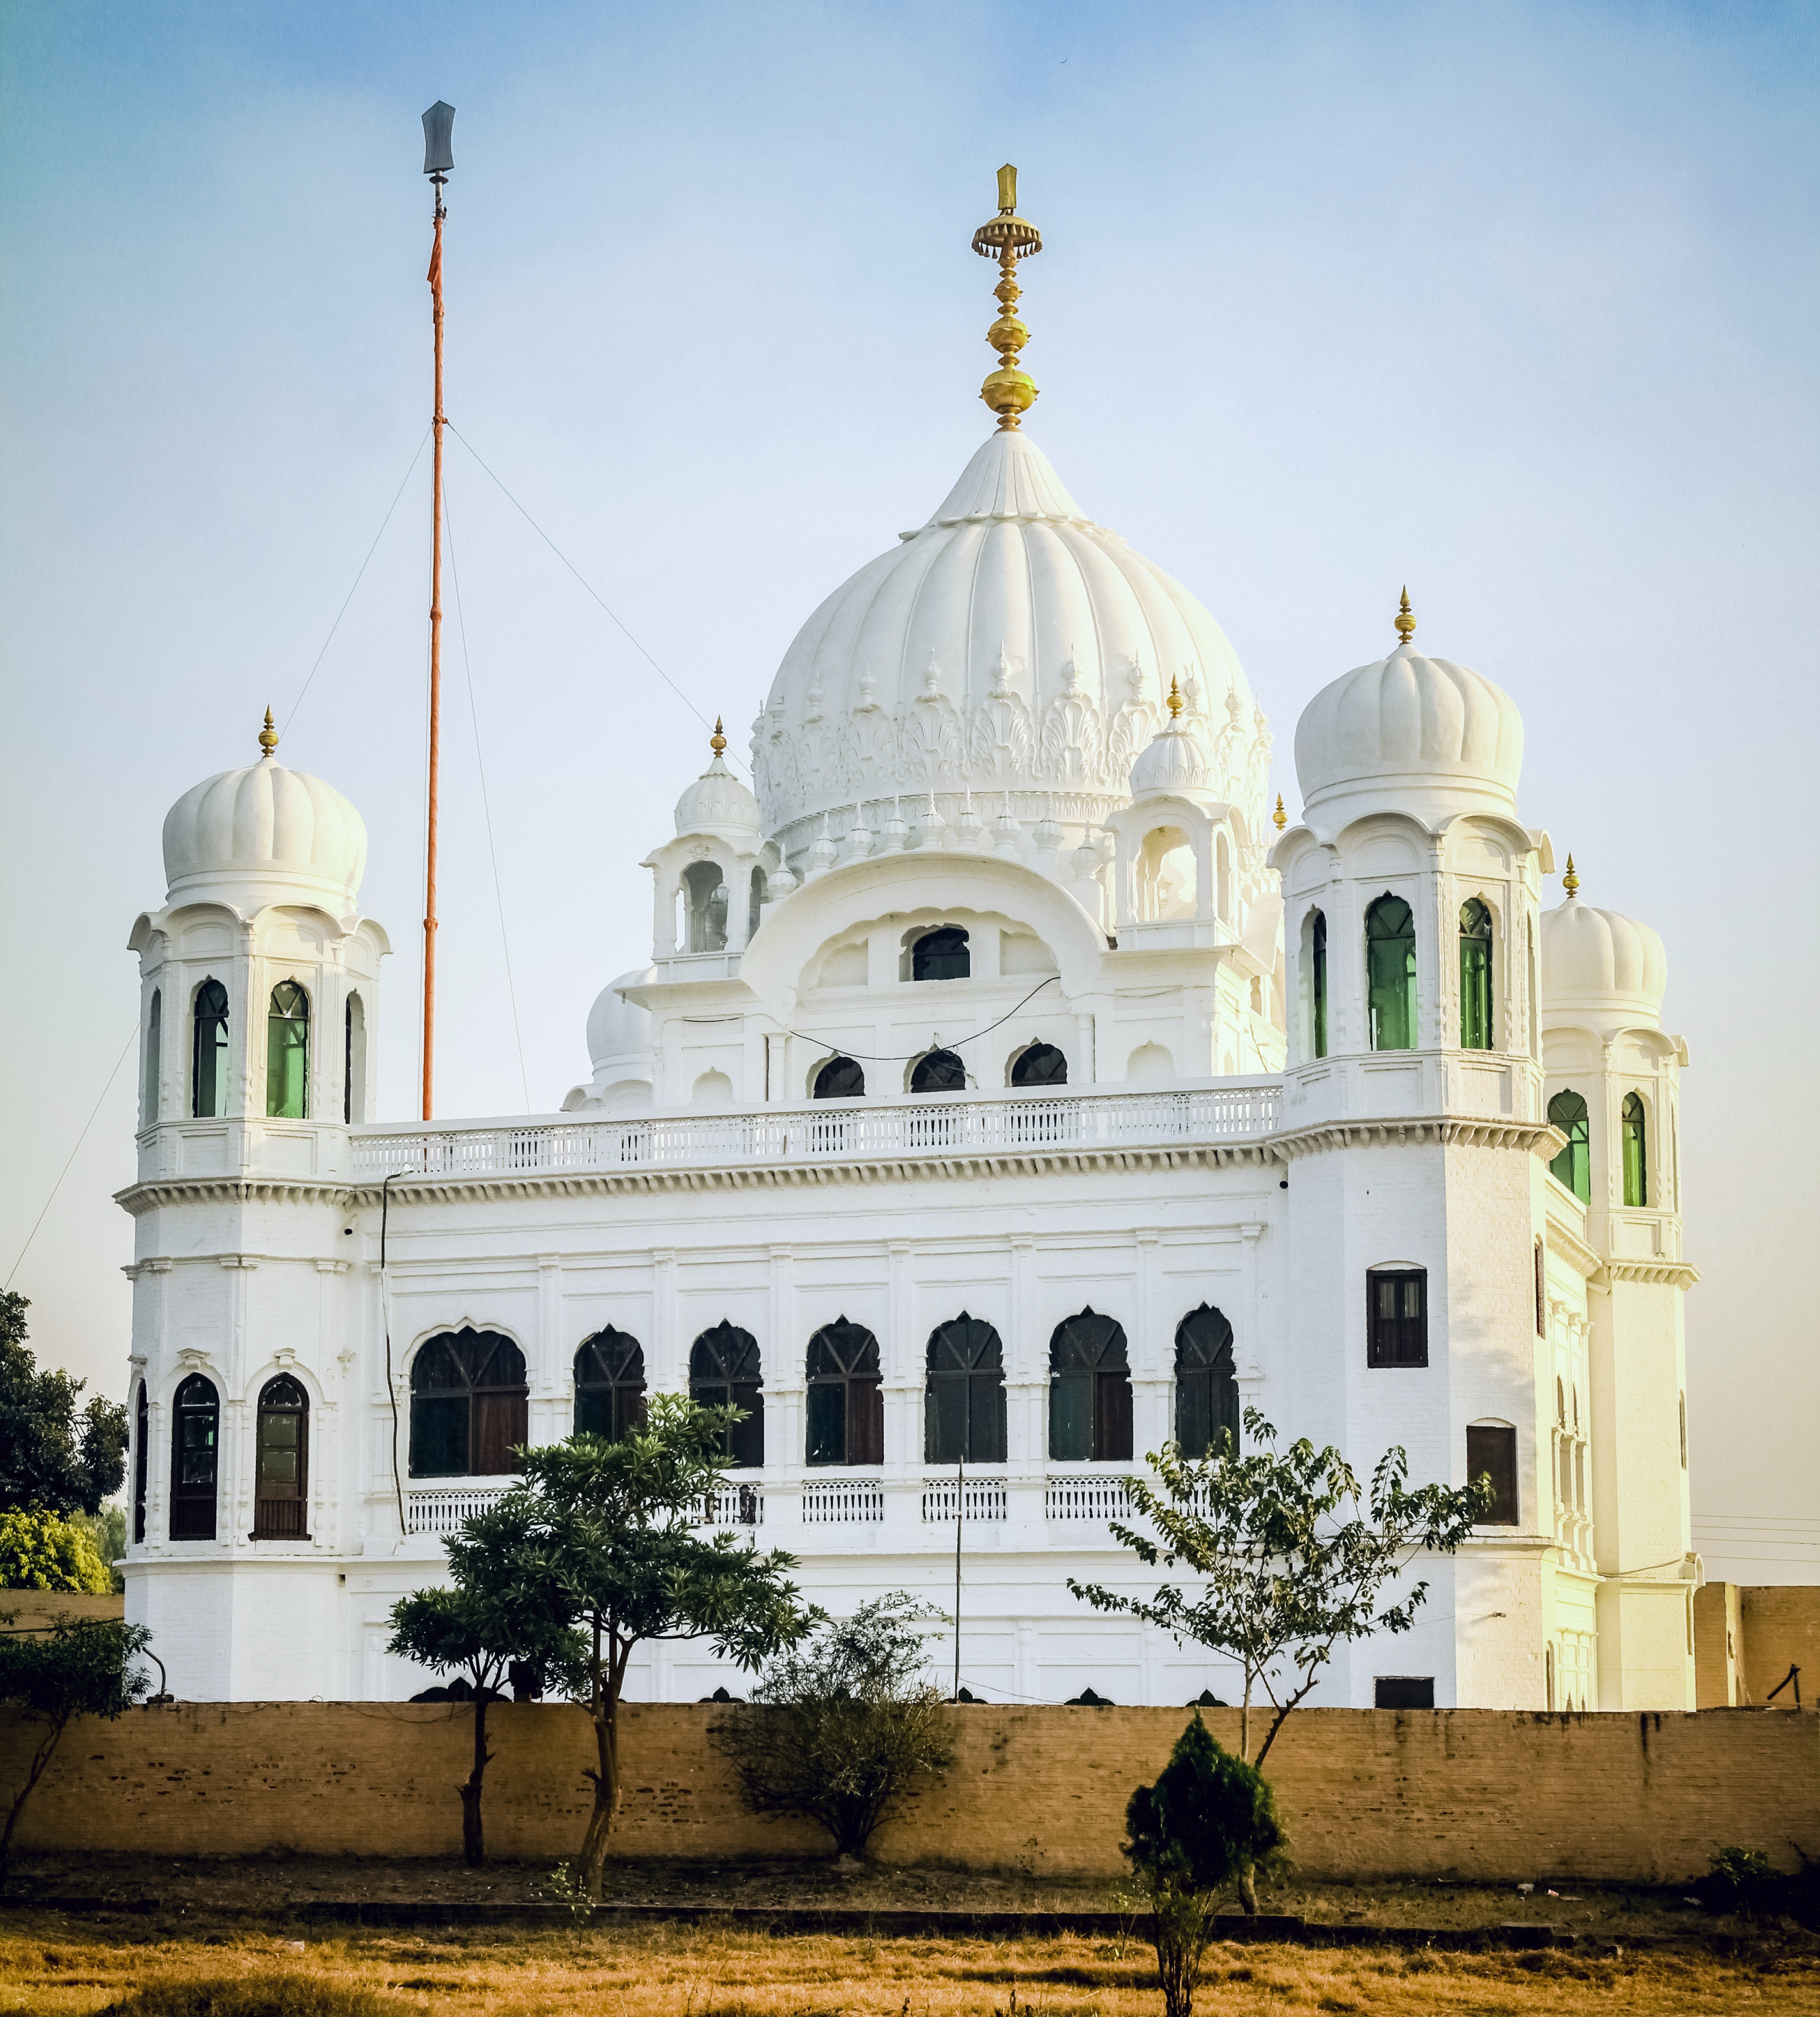 Gurdwara Darbar Sahib Kartarpur located on the banks of river Ravi in Pakistan, where Guru Nanak Devji spent eighteen years of his life spreading message of peace and brotherhood. Photo courtesy: Wikimedia